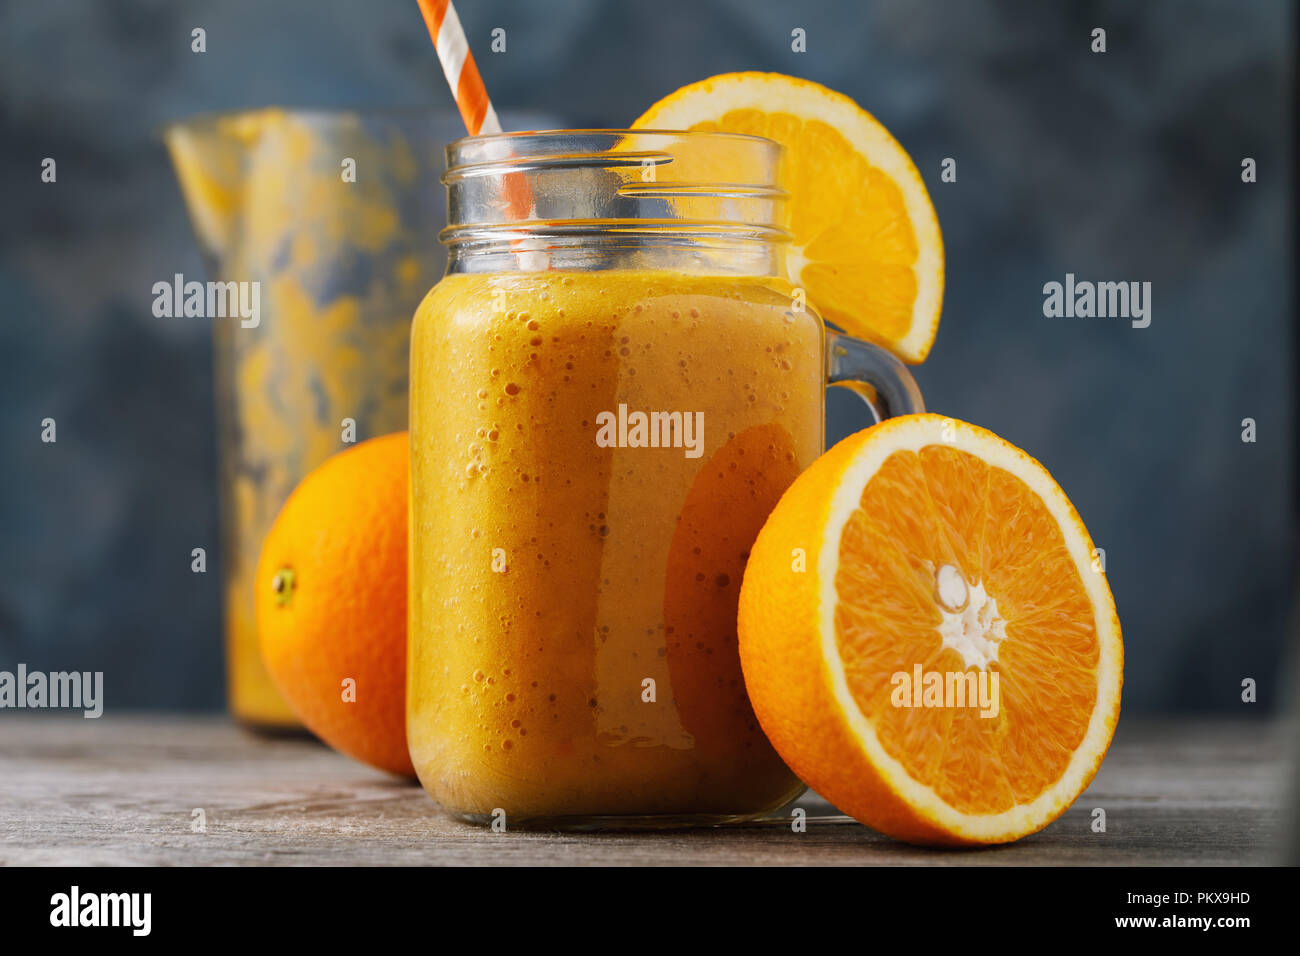 Vitamin drink: smoothies from fresh oranges in a glass jar on a wooden table, close-up - Stock Image